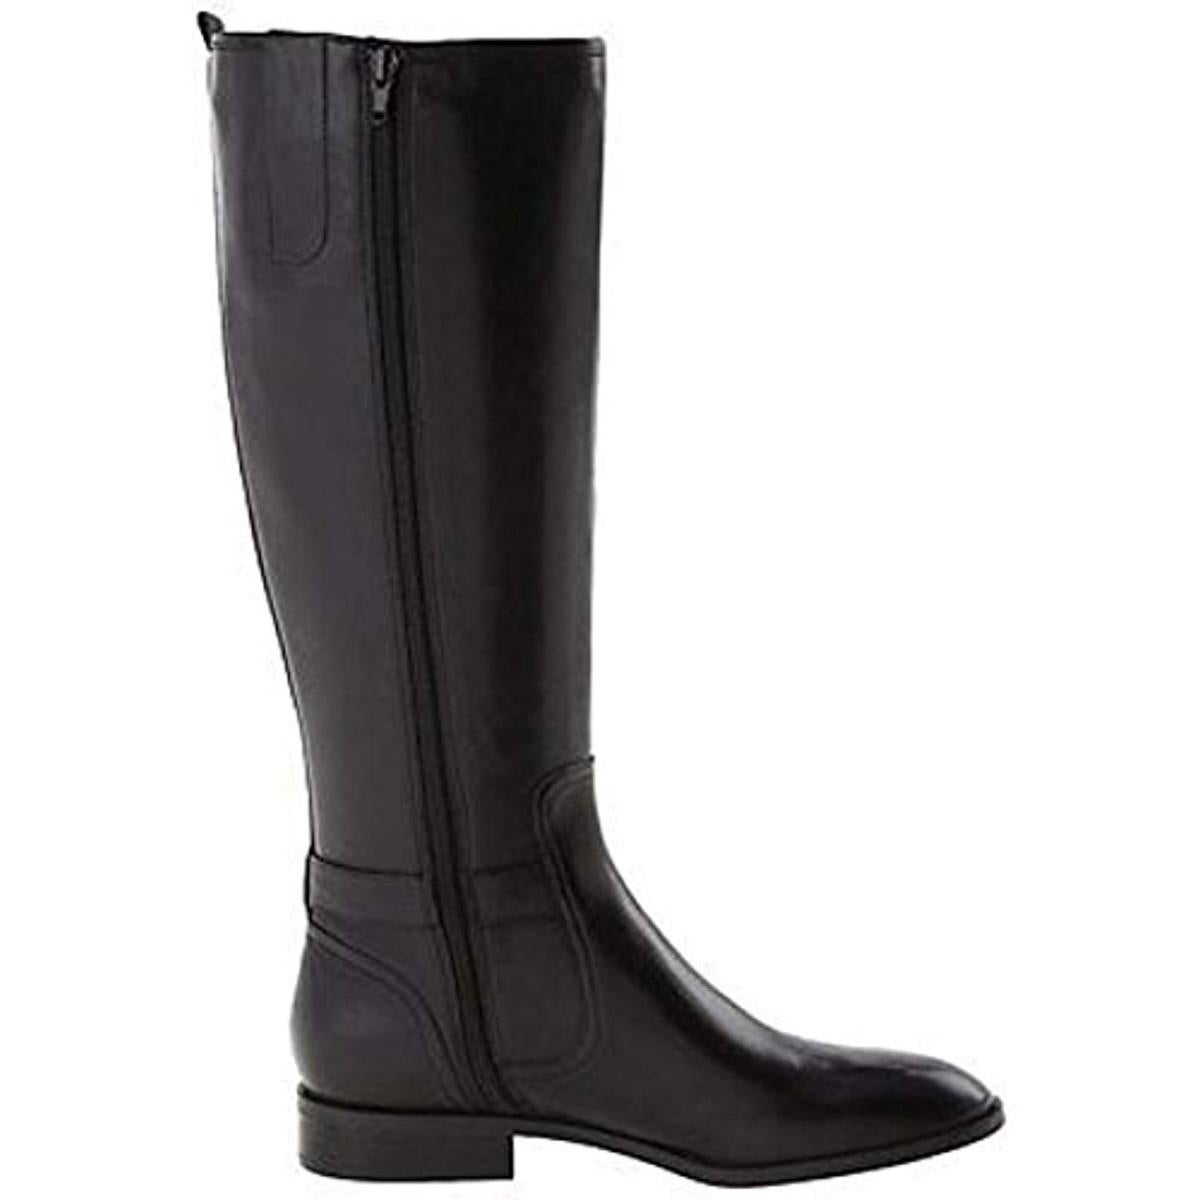 cc7d2aab58c Nine West Womens Bring It Riding Boots Leather Knee-High